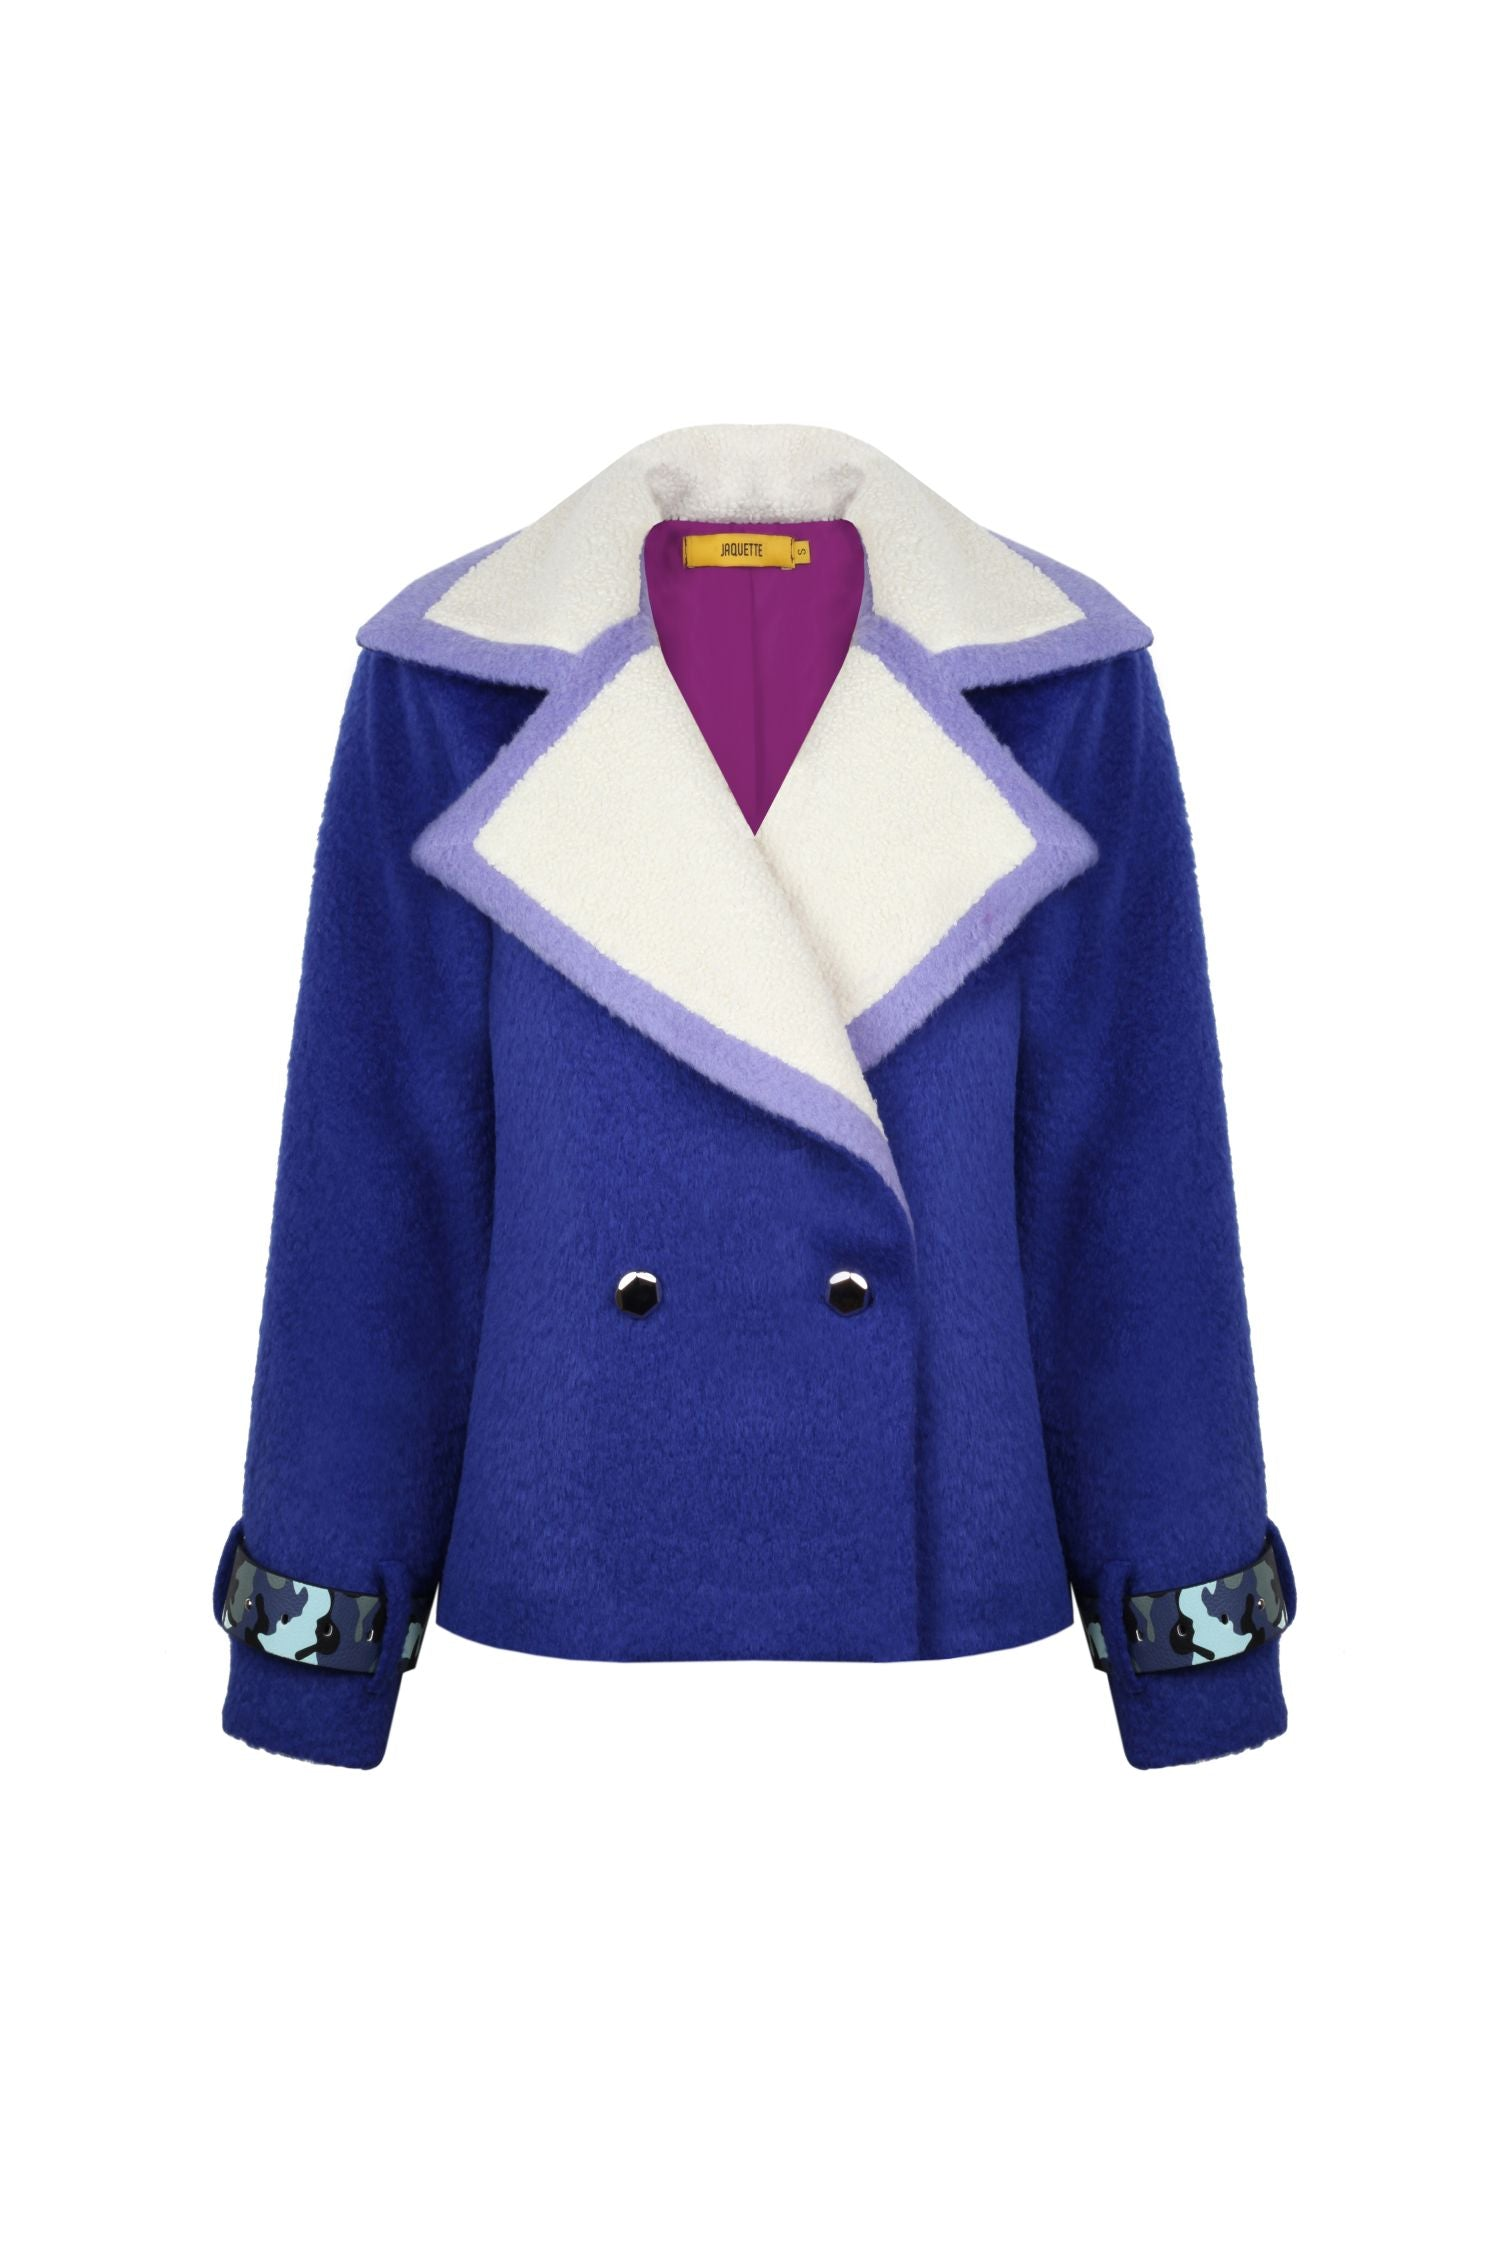 Sax Colored Wool Peacoat